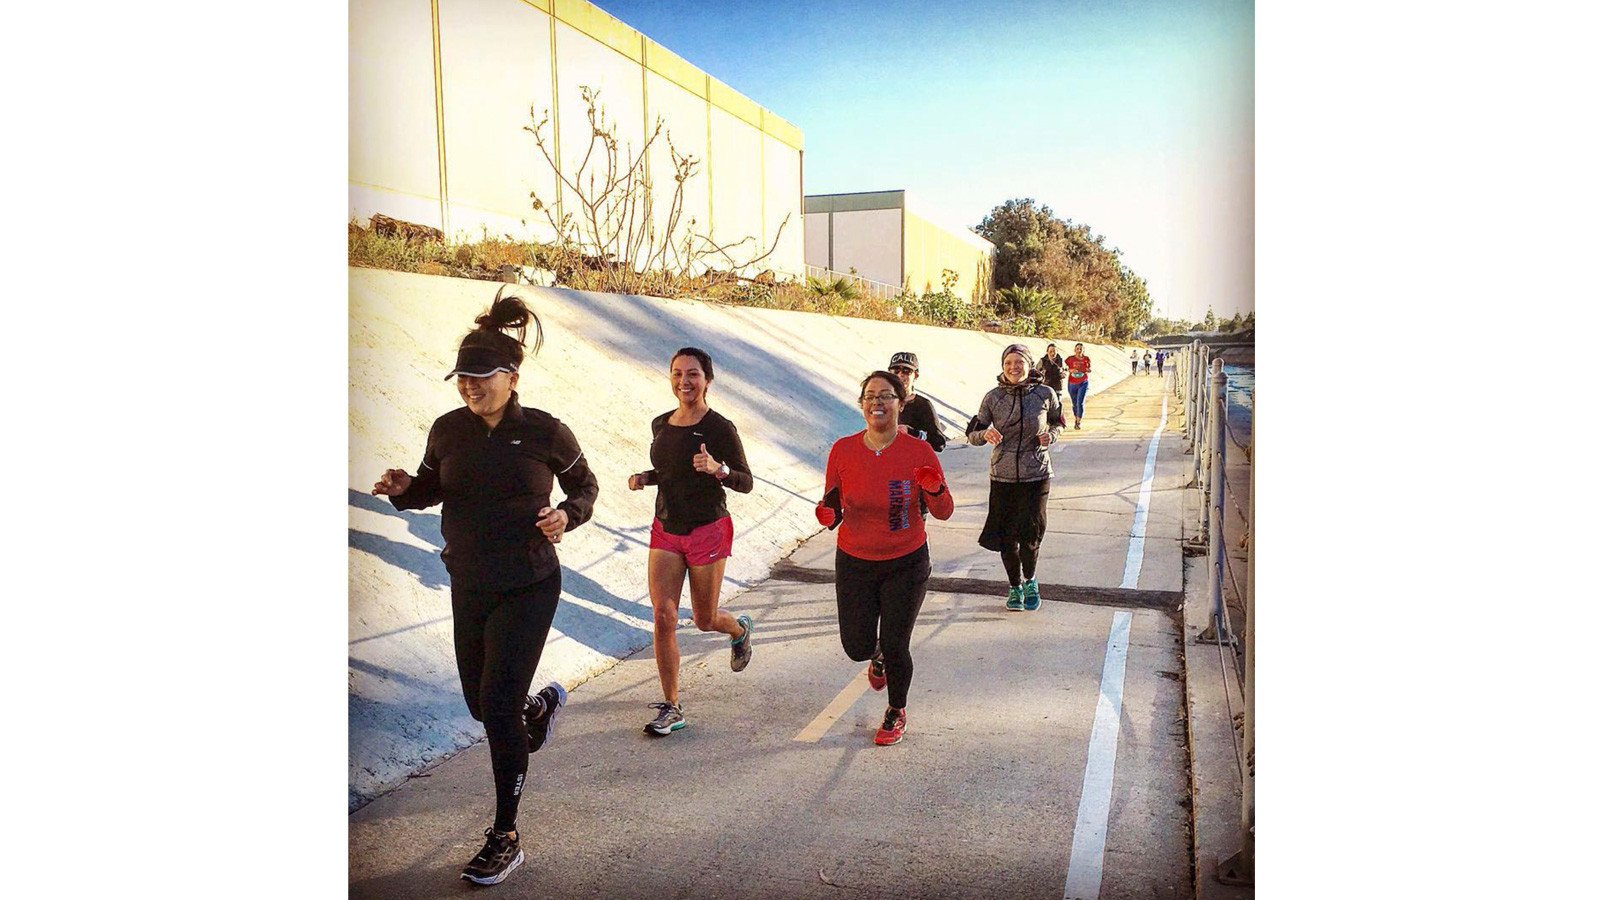 Follow @unitedla to find group runs in Southern California.